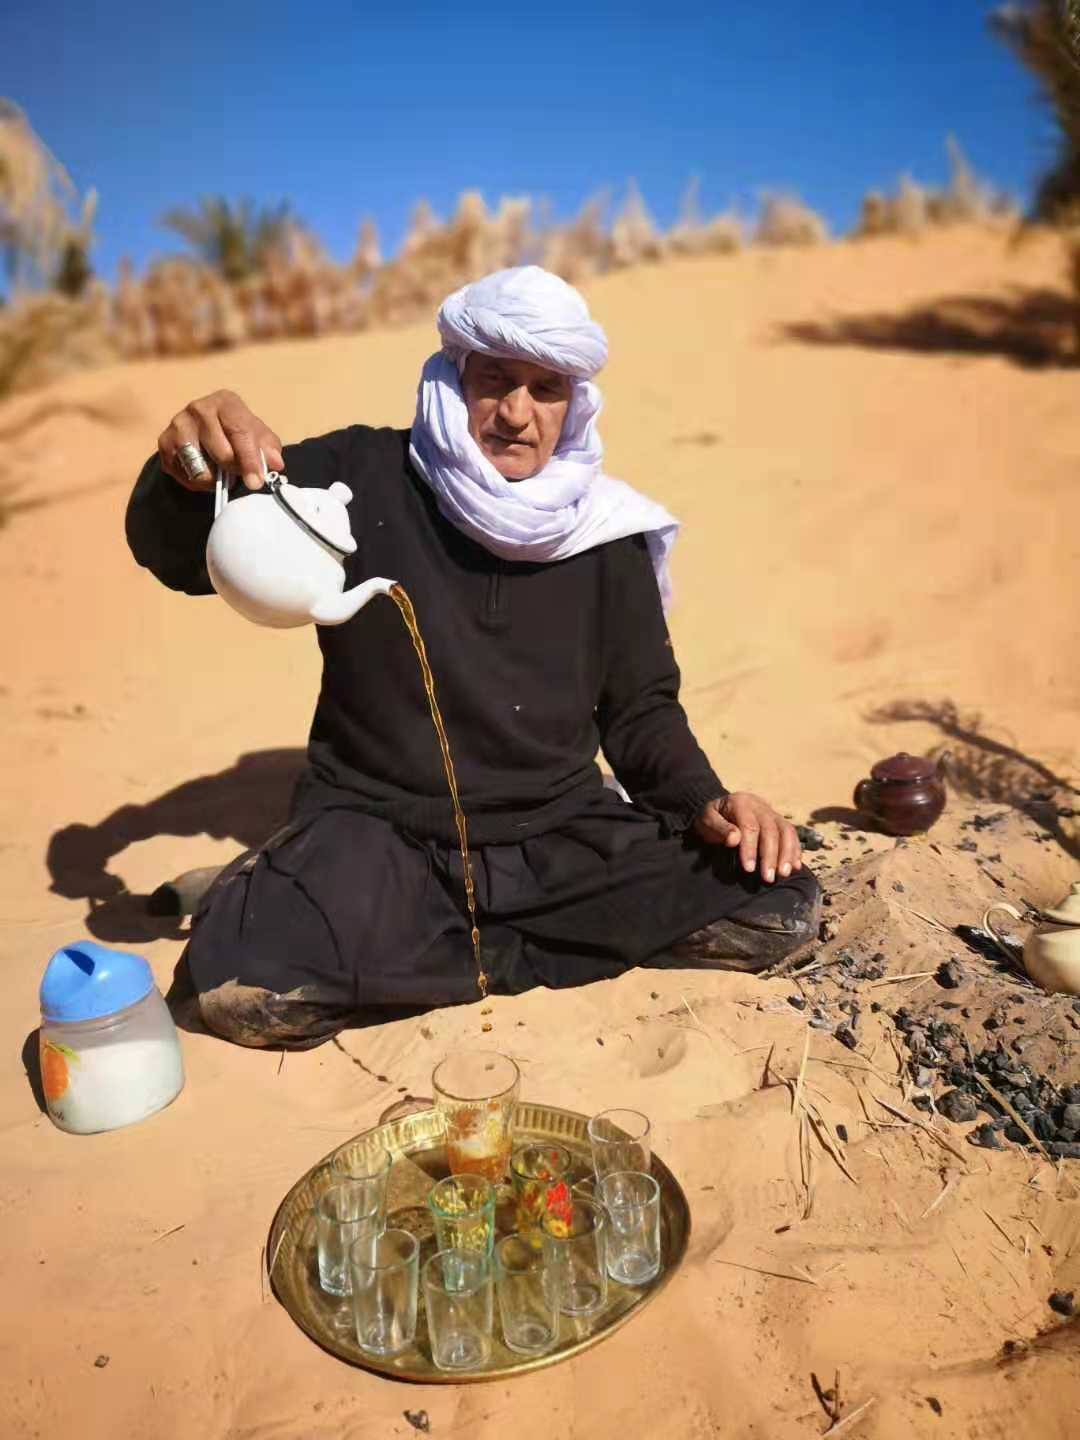 A nomad serves tea in the Algerian Desert near Taghit